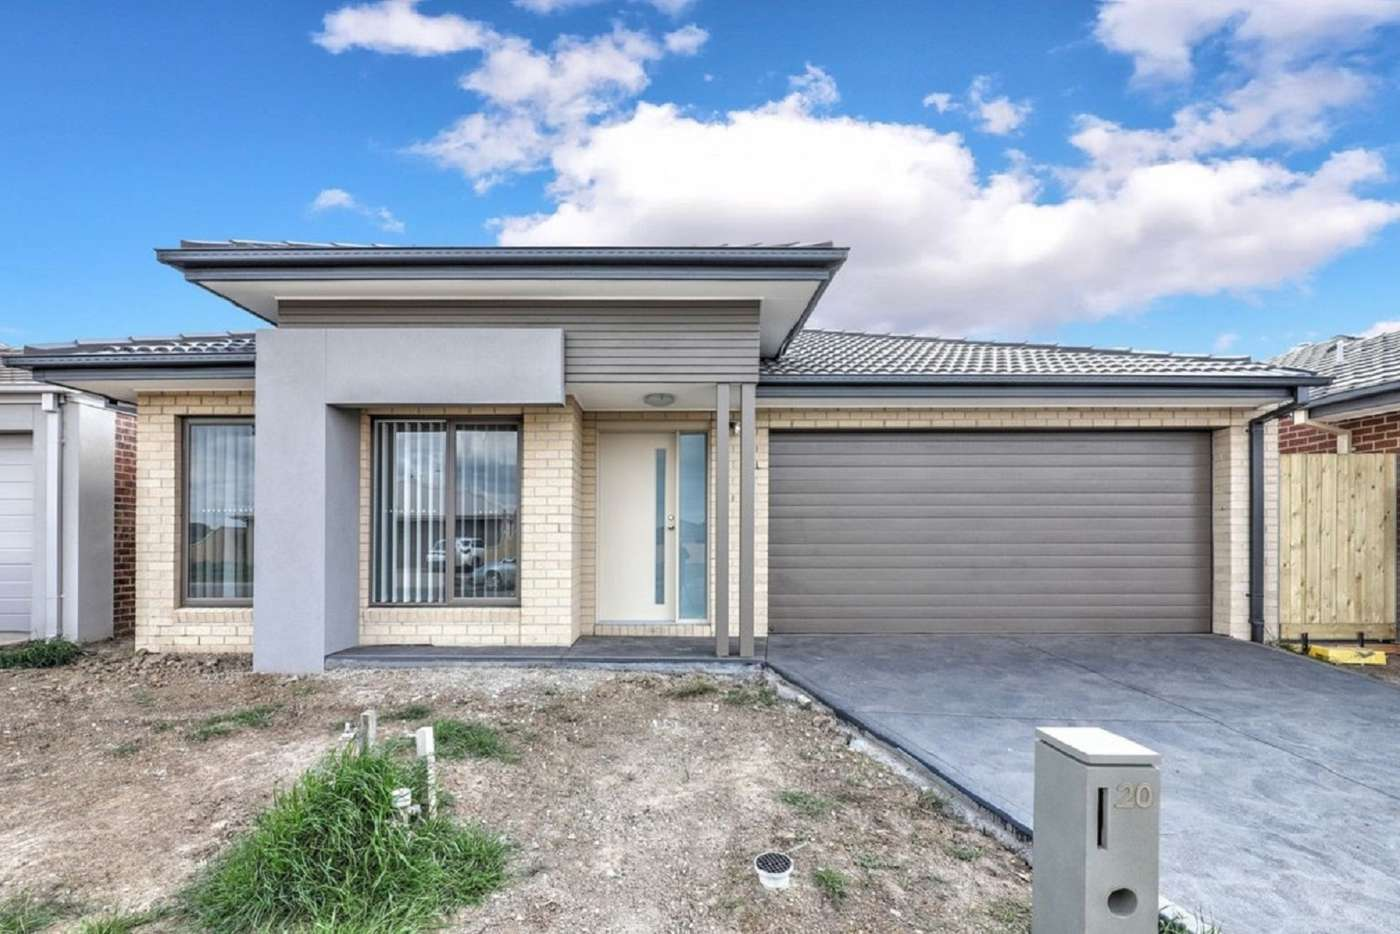 Main view of Homely house listing, 20 Argenta St, Mickleham VIC 3064